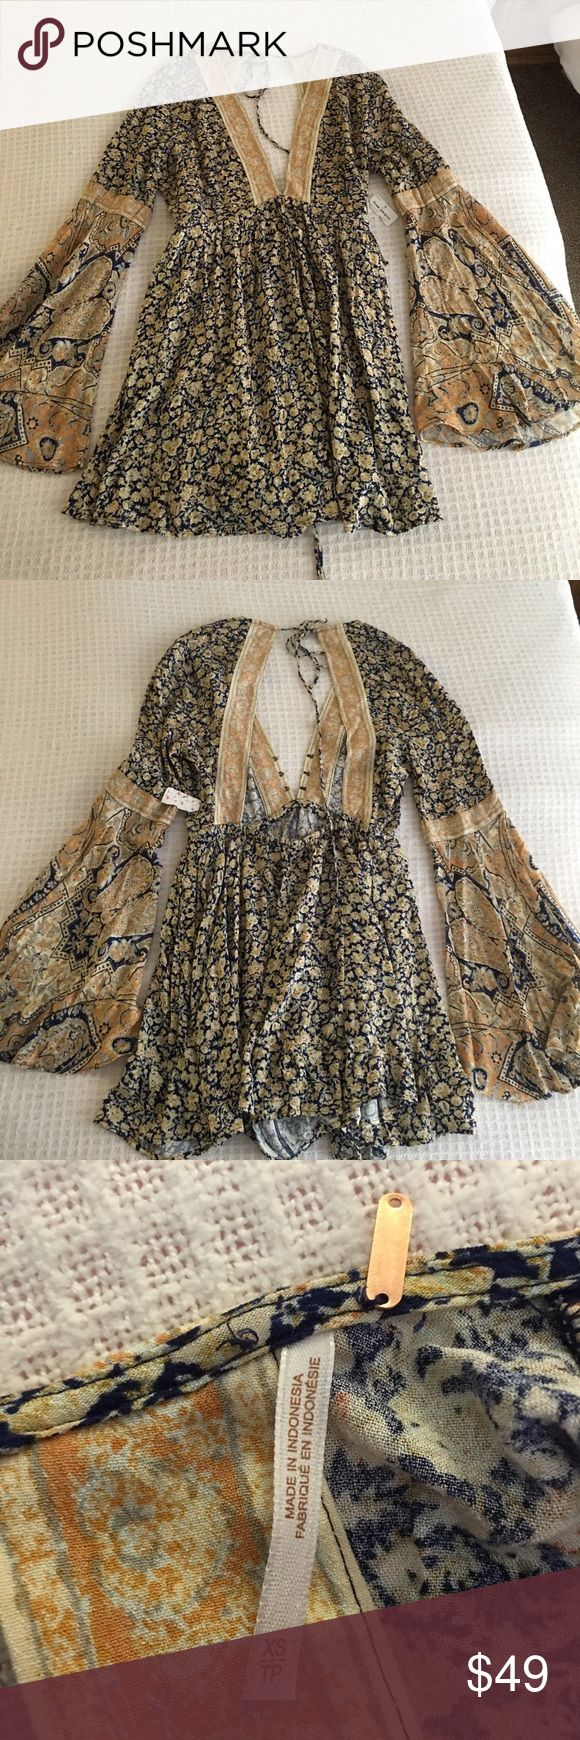 Free People dress, XS, new with tags Beautiful, multicolored and flowing dress. Brand new with tag and still available at Macy's. I love it but it's a bit too small. Can bundle with other items. Free People Dresses Midi